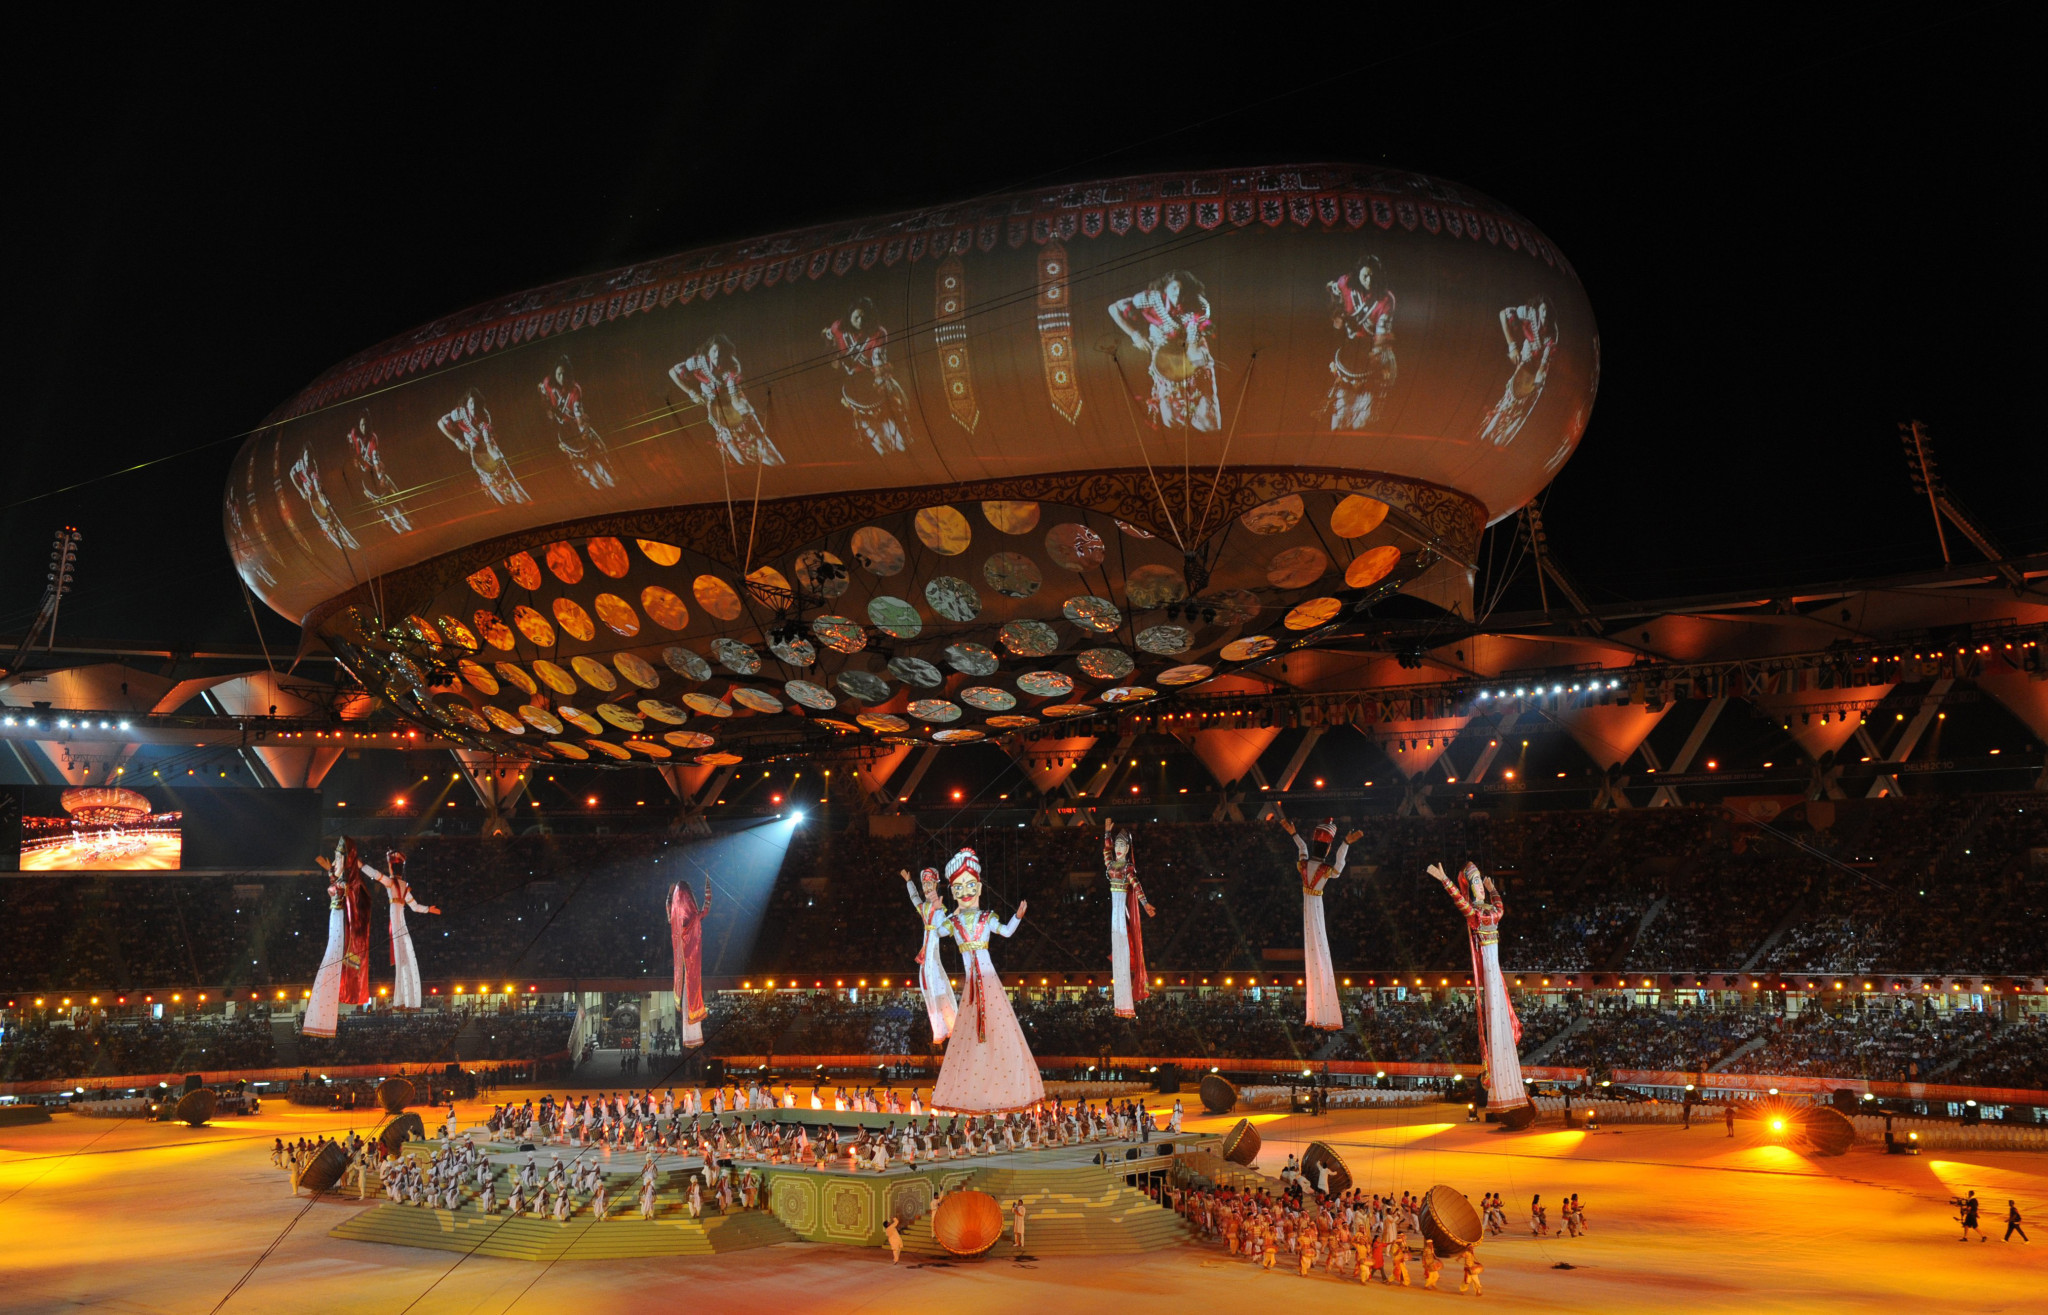 The fireworks finale is seen during the Opening Ceremony for the Delhi 2010 Commonwealth Games at Jawaharlal Nehru Stadium on October 3, 2010 in Delhi, India ©Getty Images